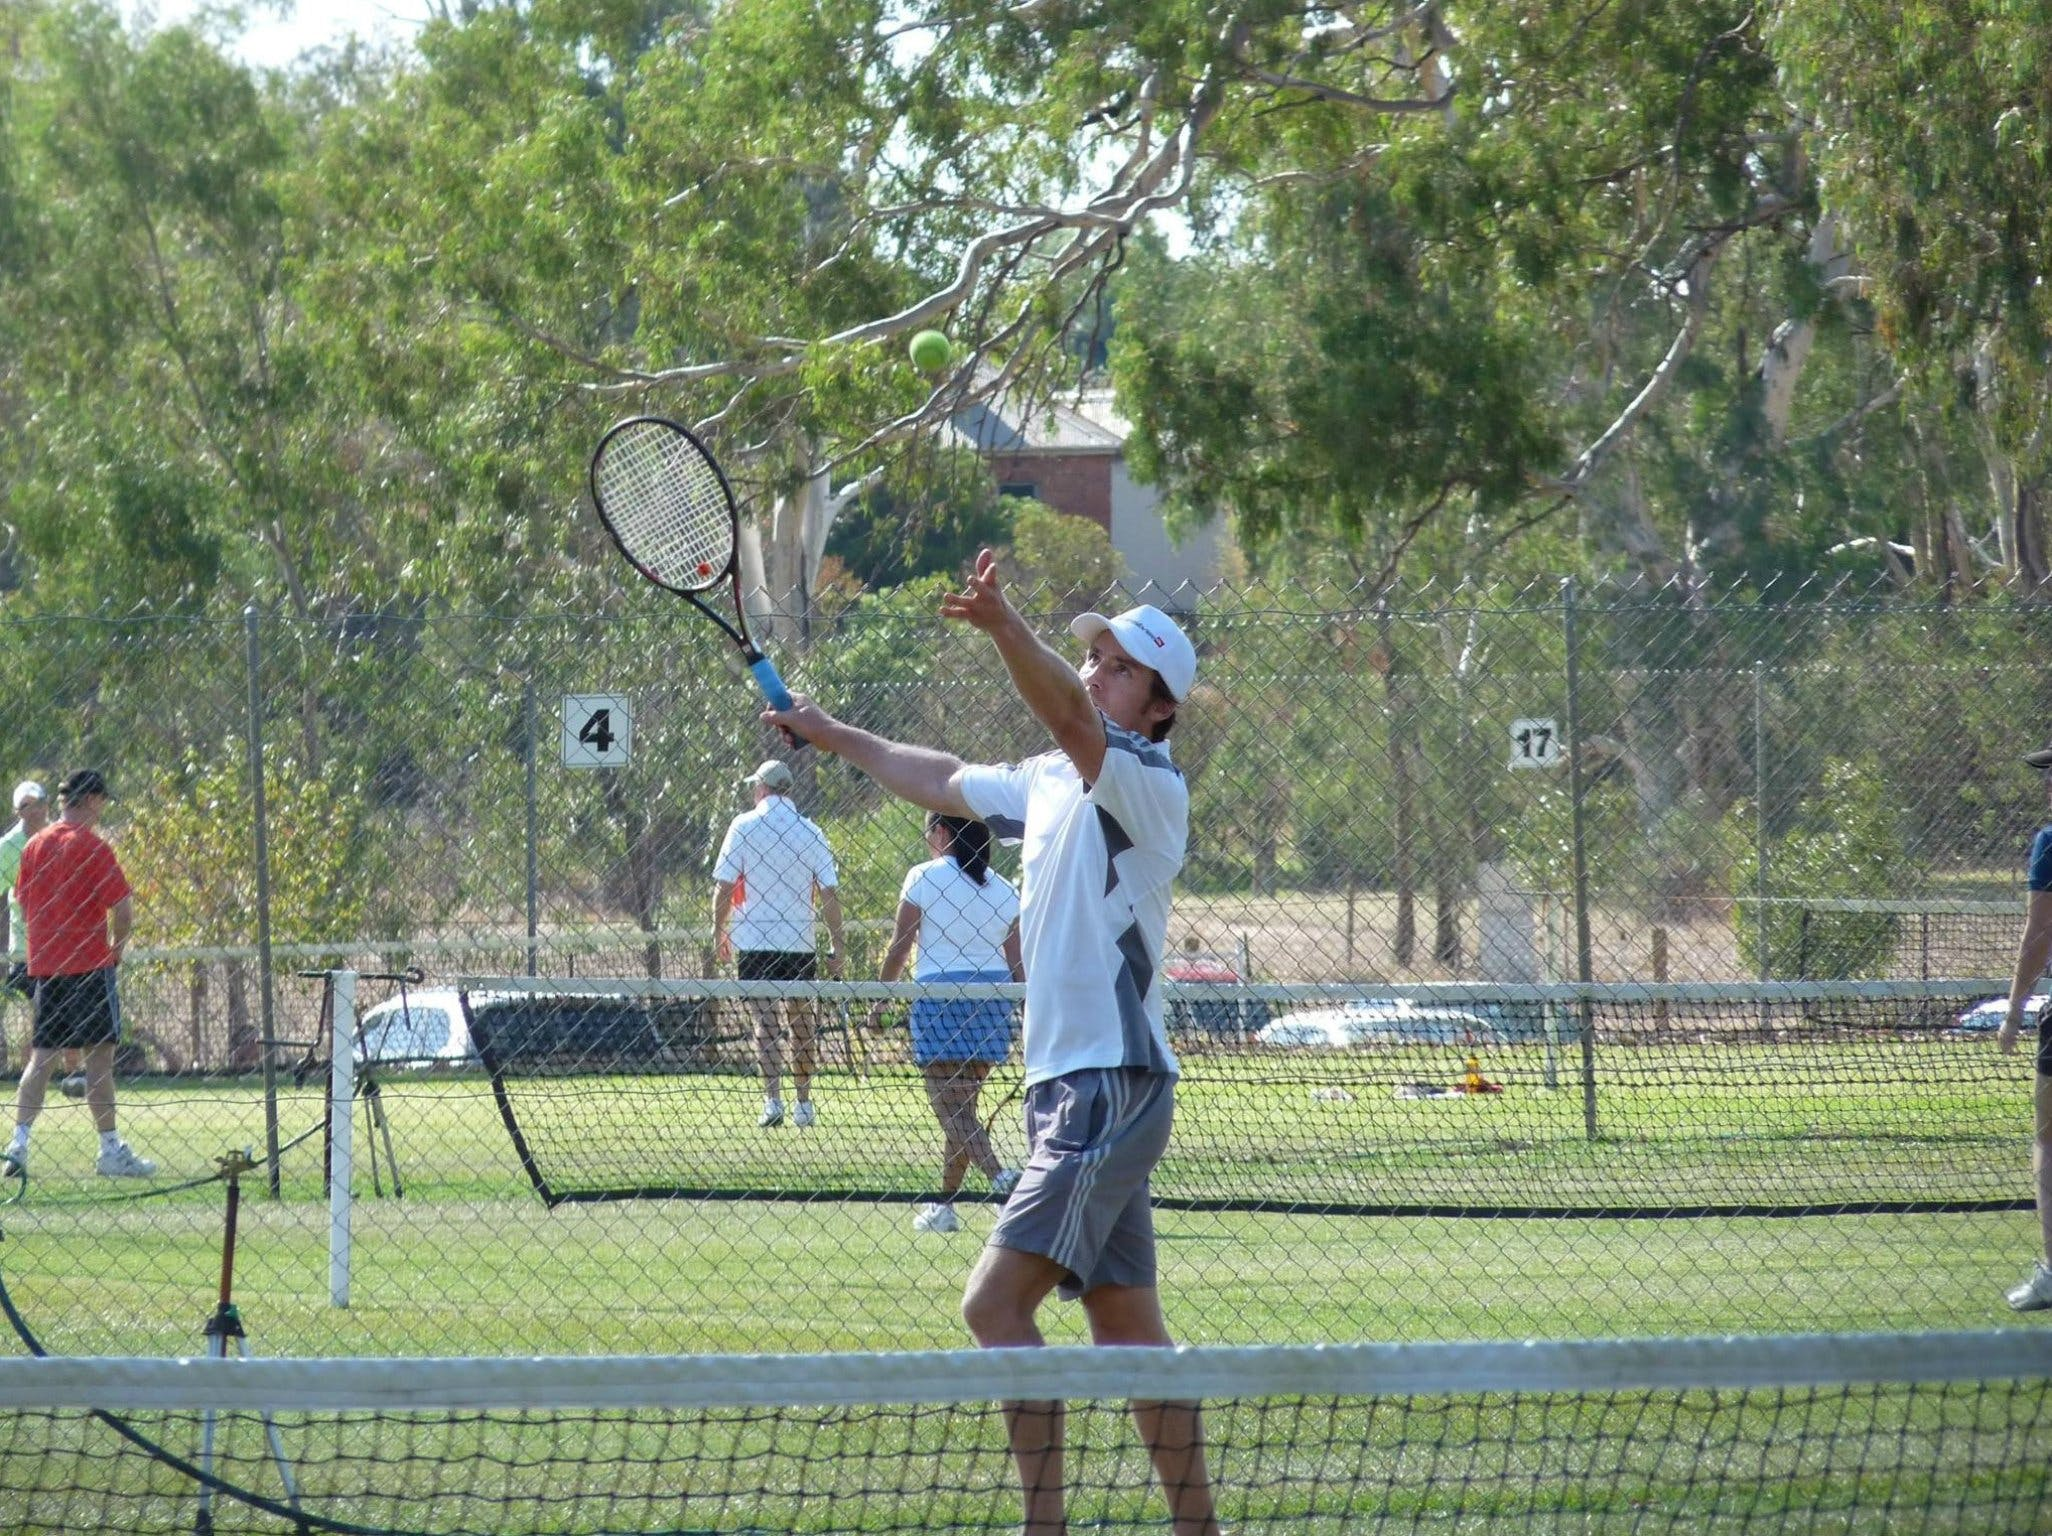 Corowa Easter Lawn Tennis Tournament - Townsville Tourism